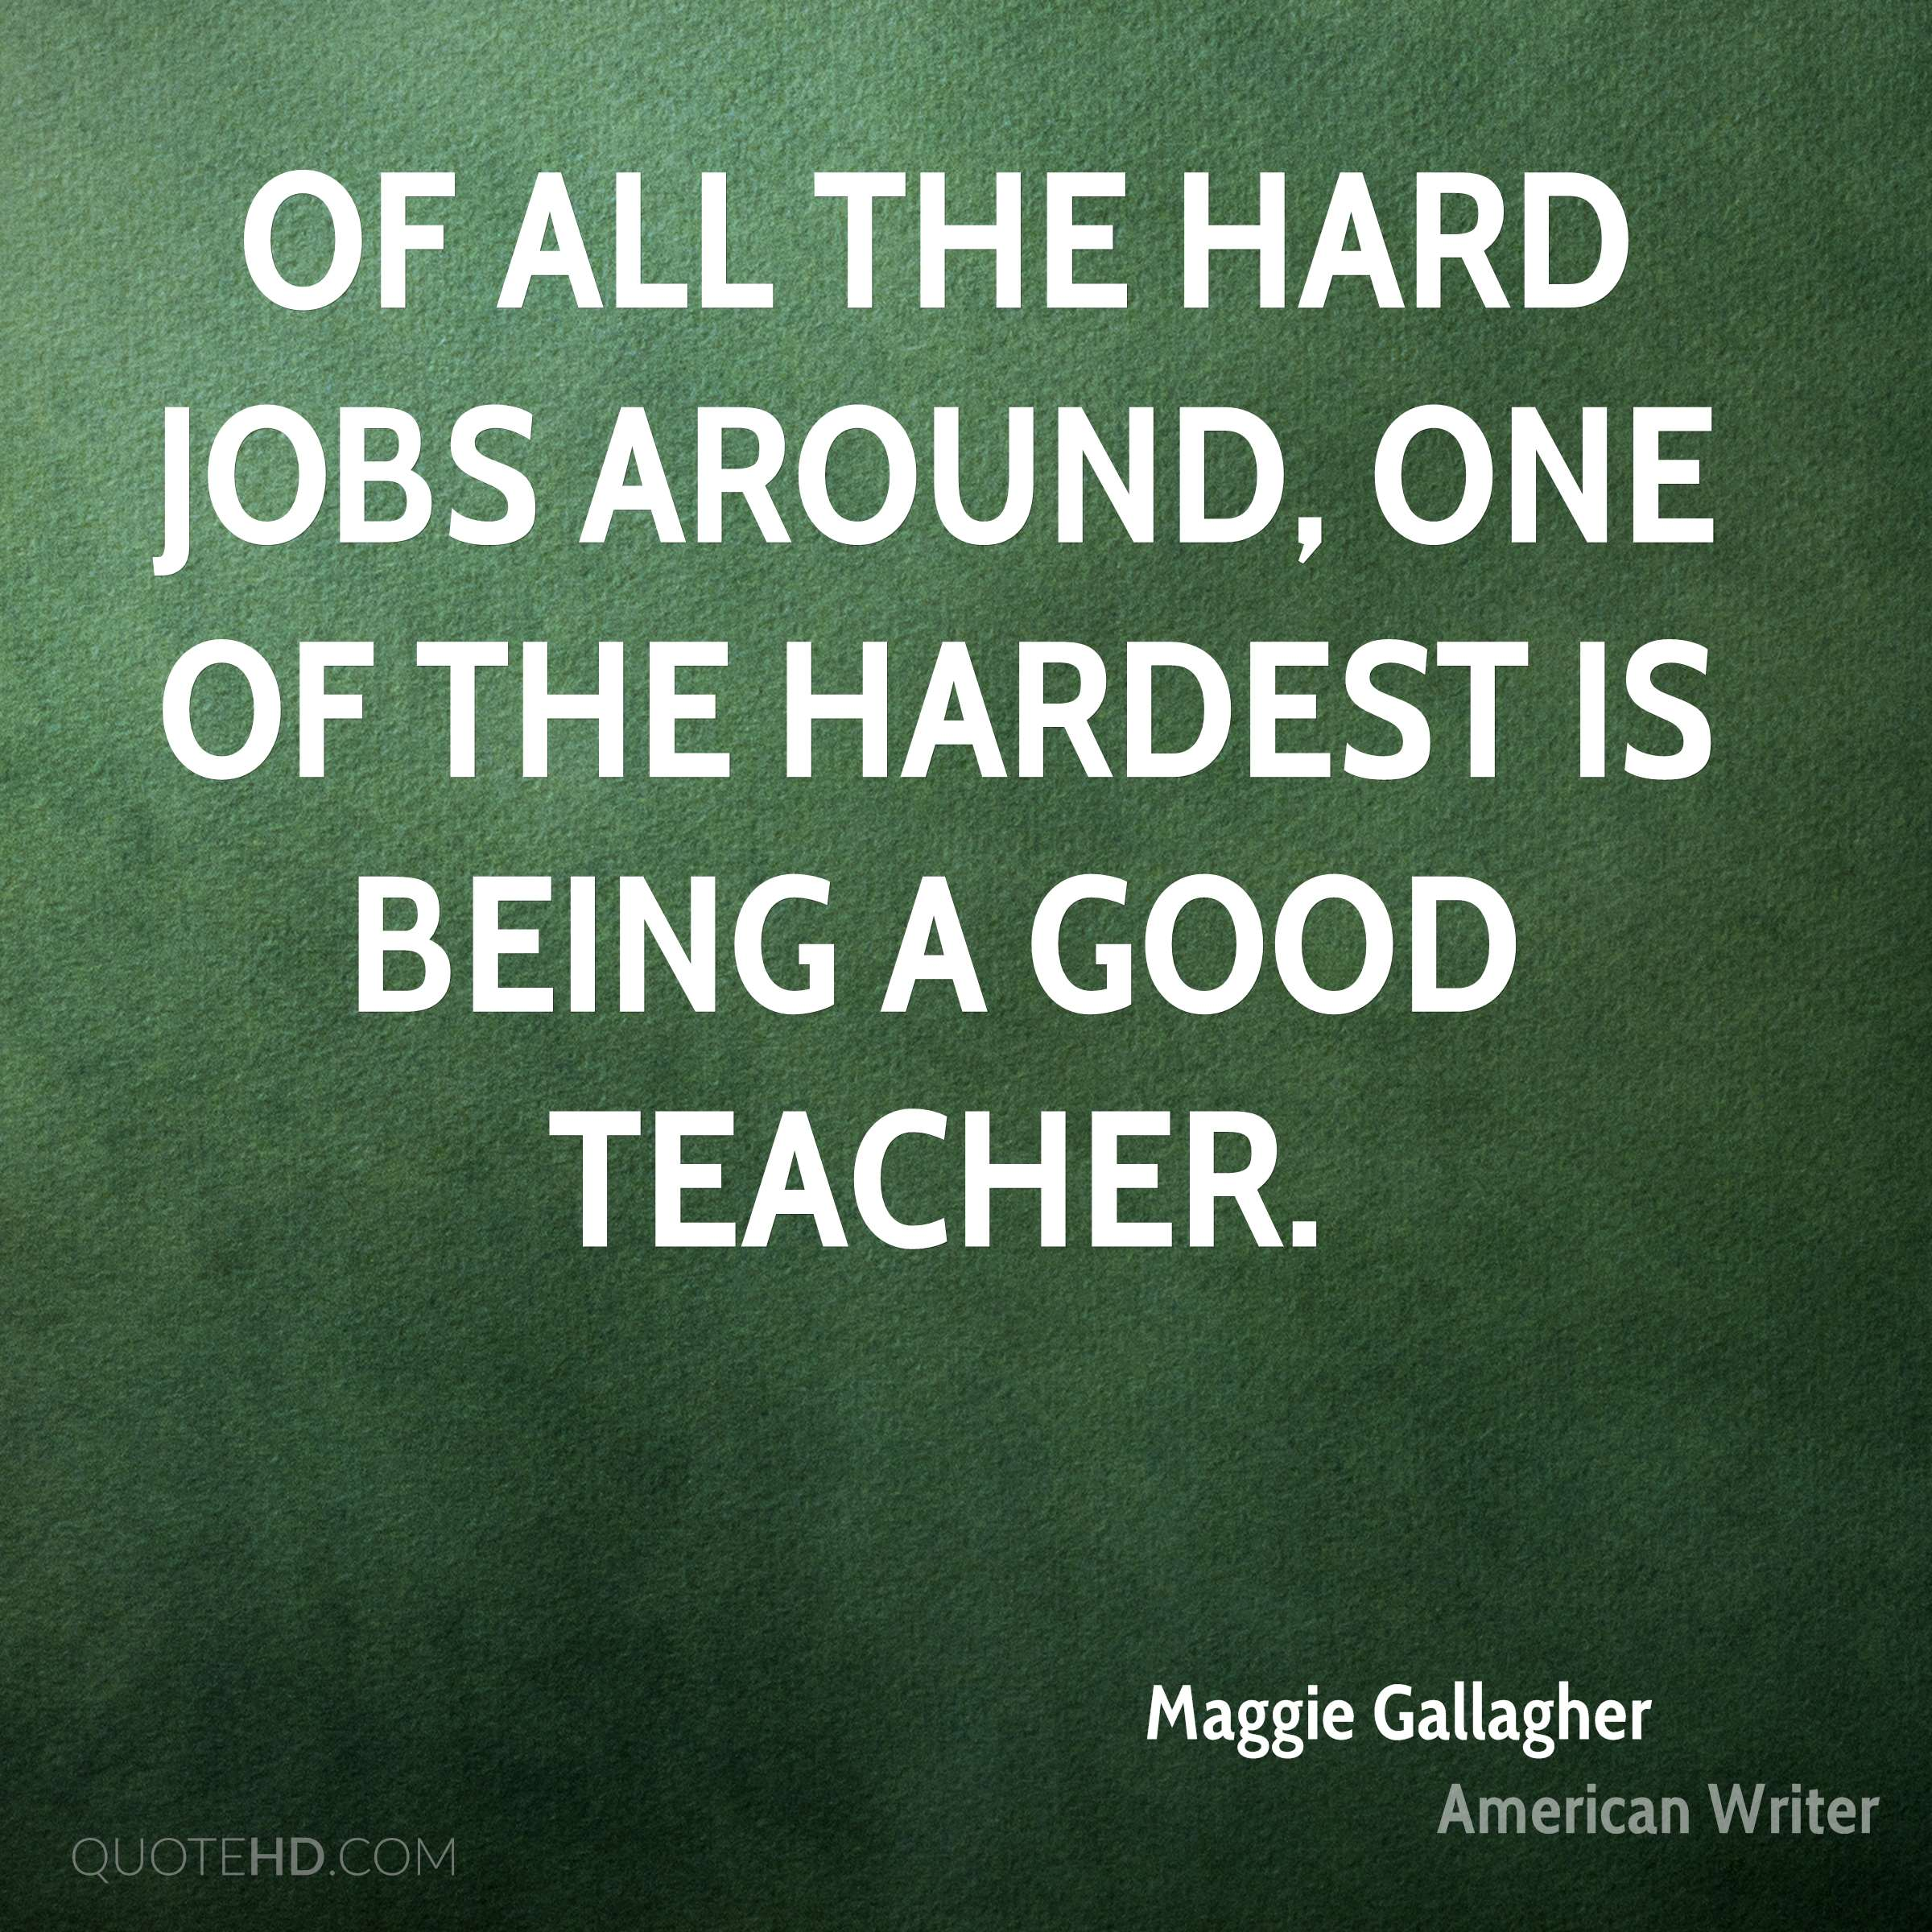 maggie gallagher quotes quotehd